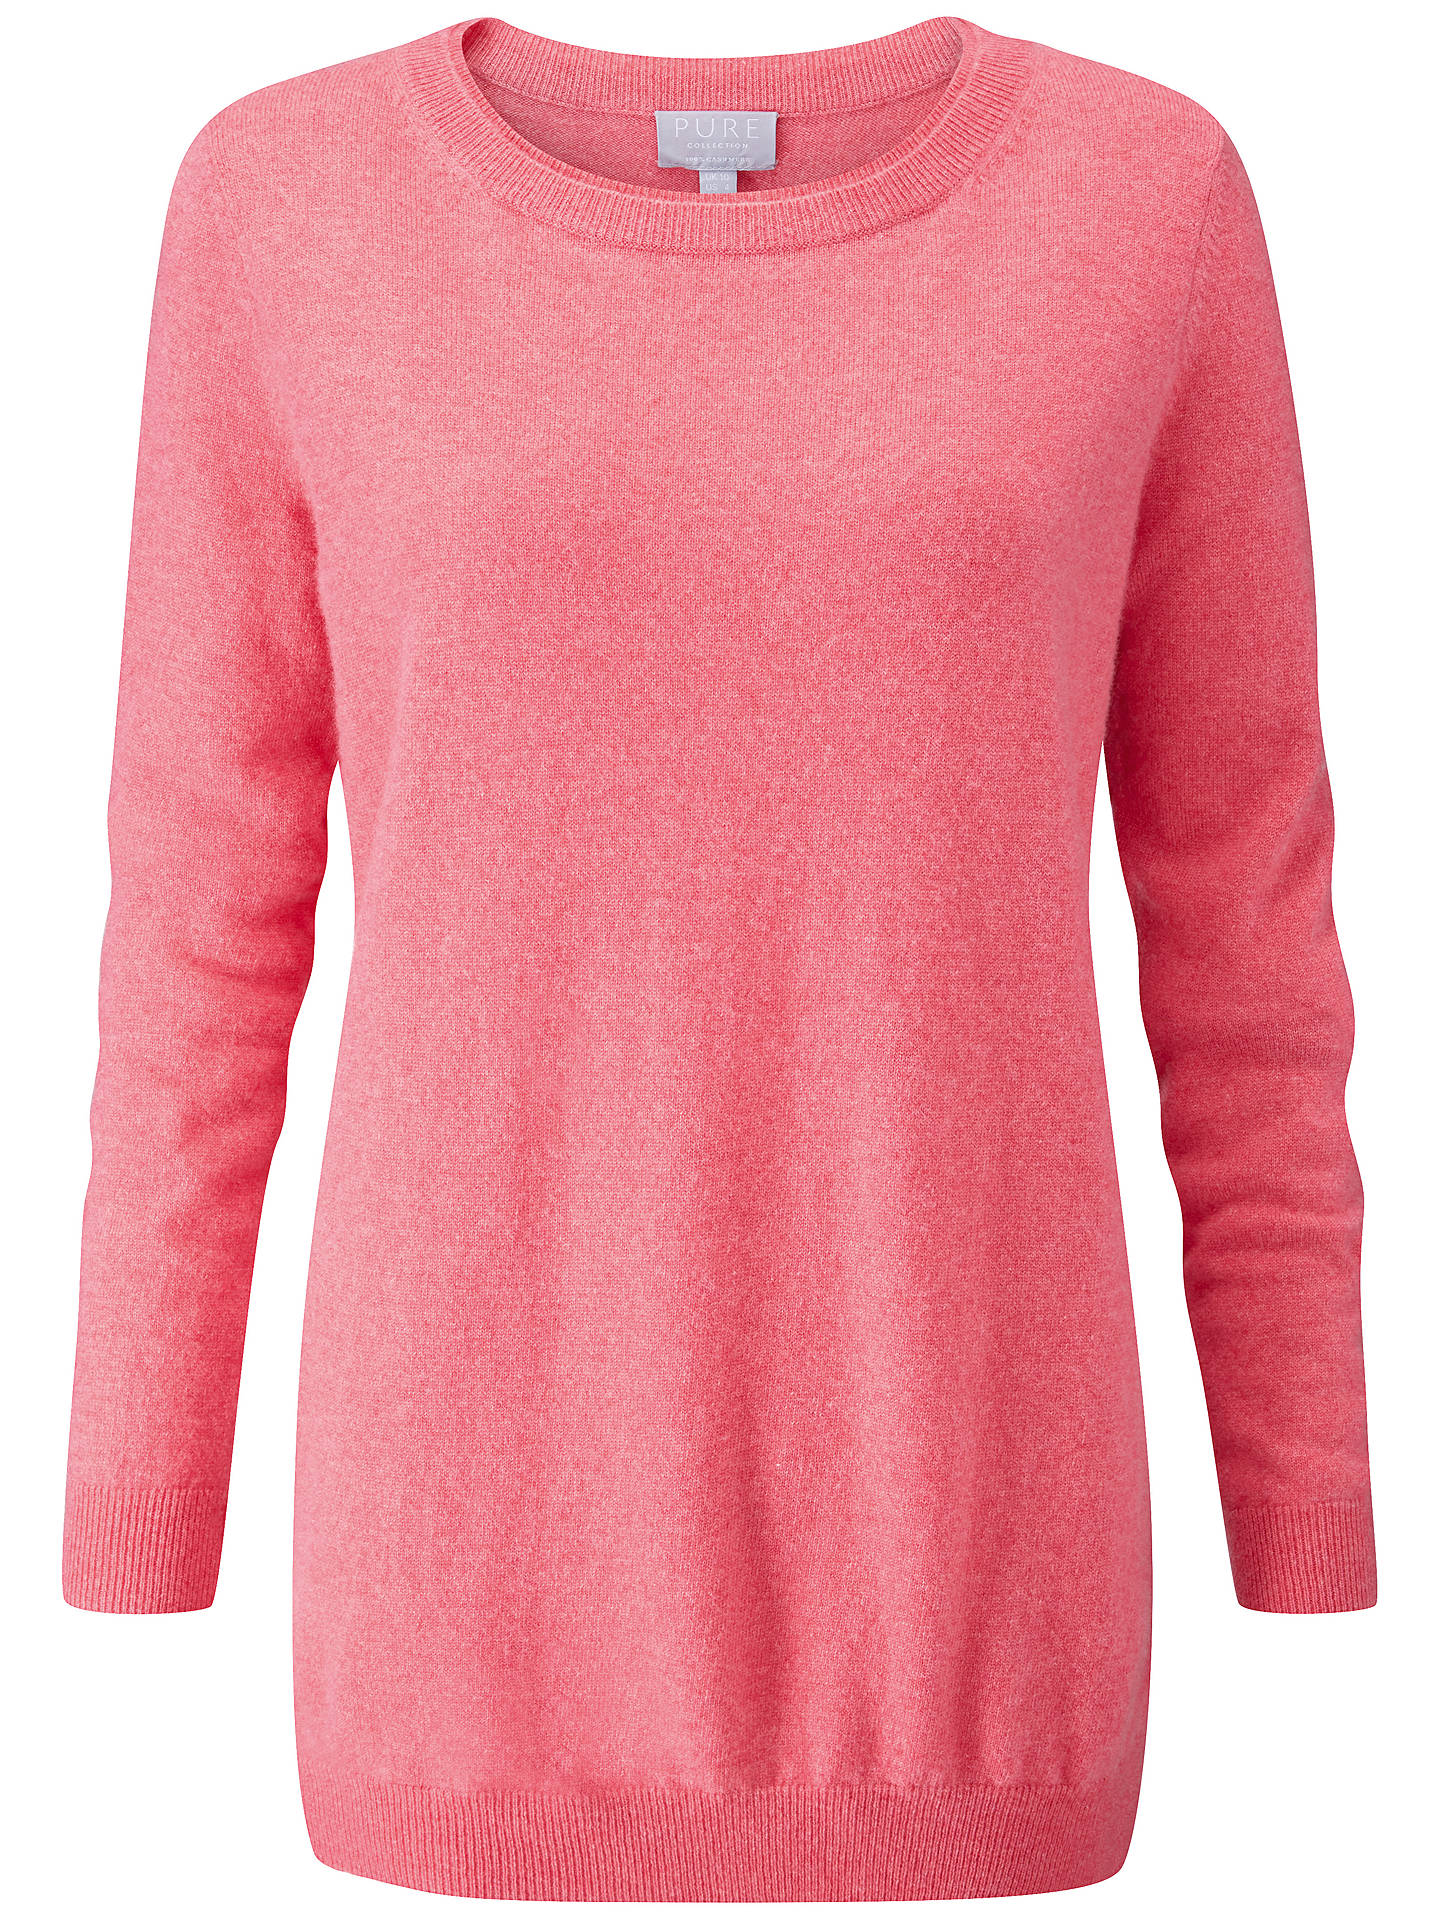 Buy Pure Collection Cashmere Boyfriend Jumper, Heather Rose, 8 Online at johnlewis.com